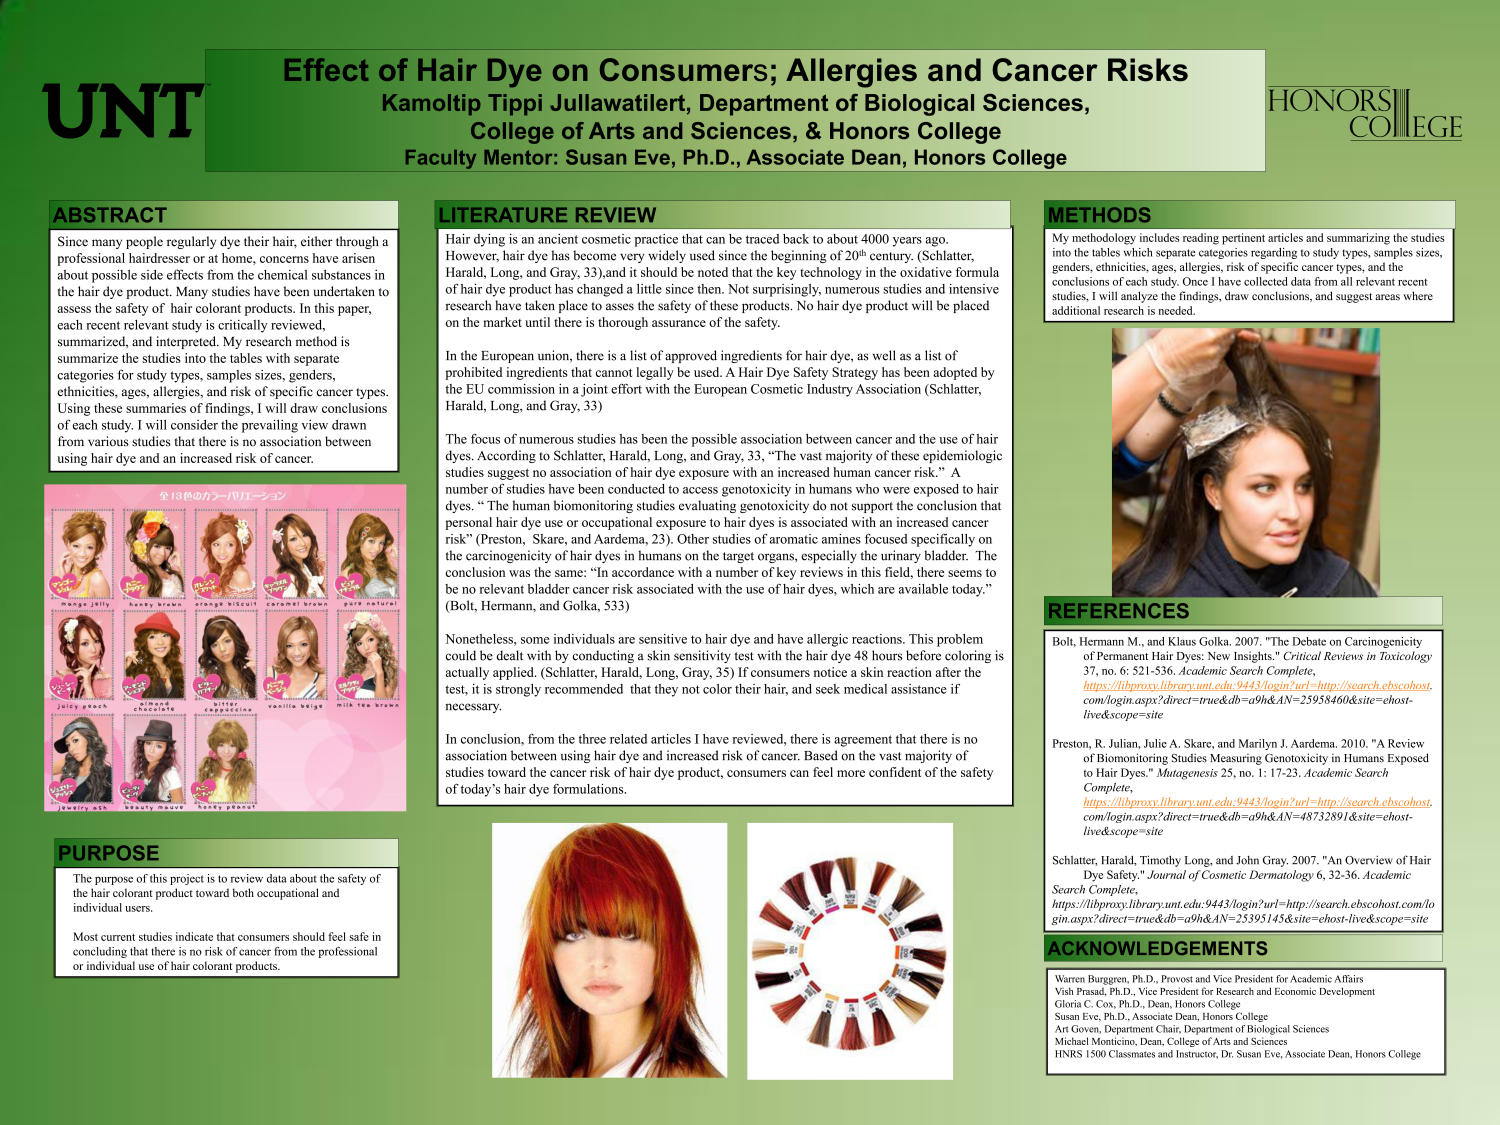 Effect of Hair Dye on Consumers; Allergies and Cancer Risks                                                                                                      [Sequence #]: 1 of 1